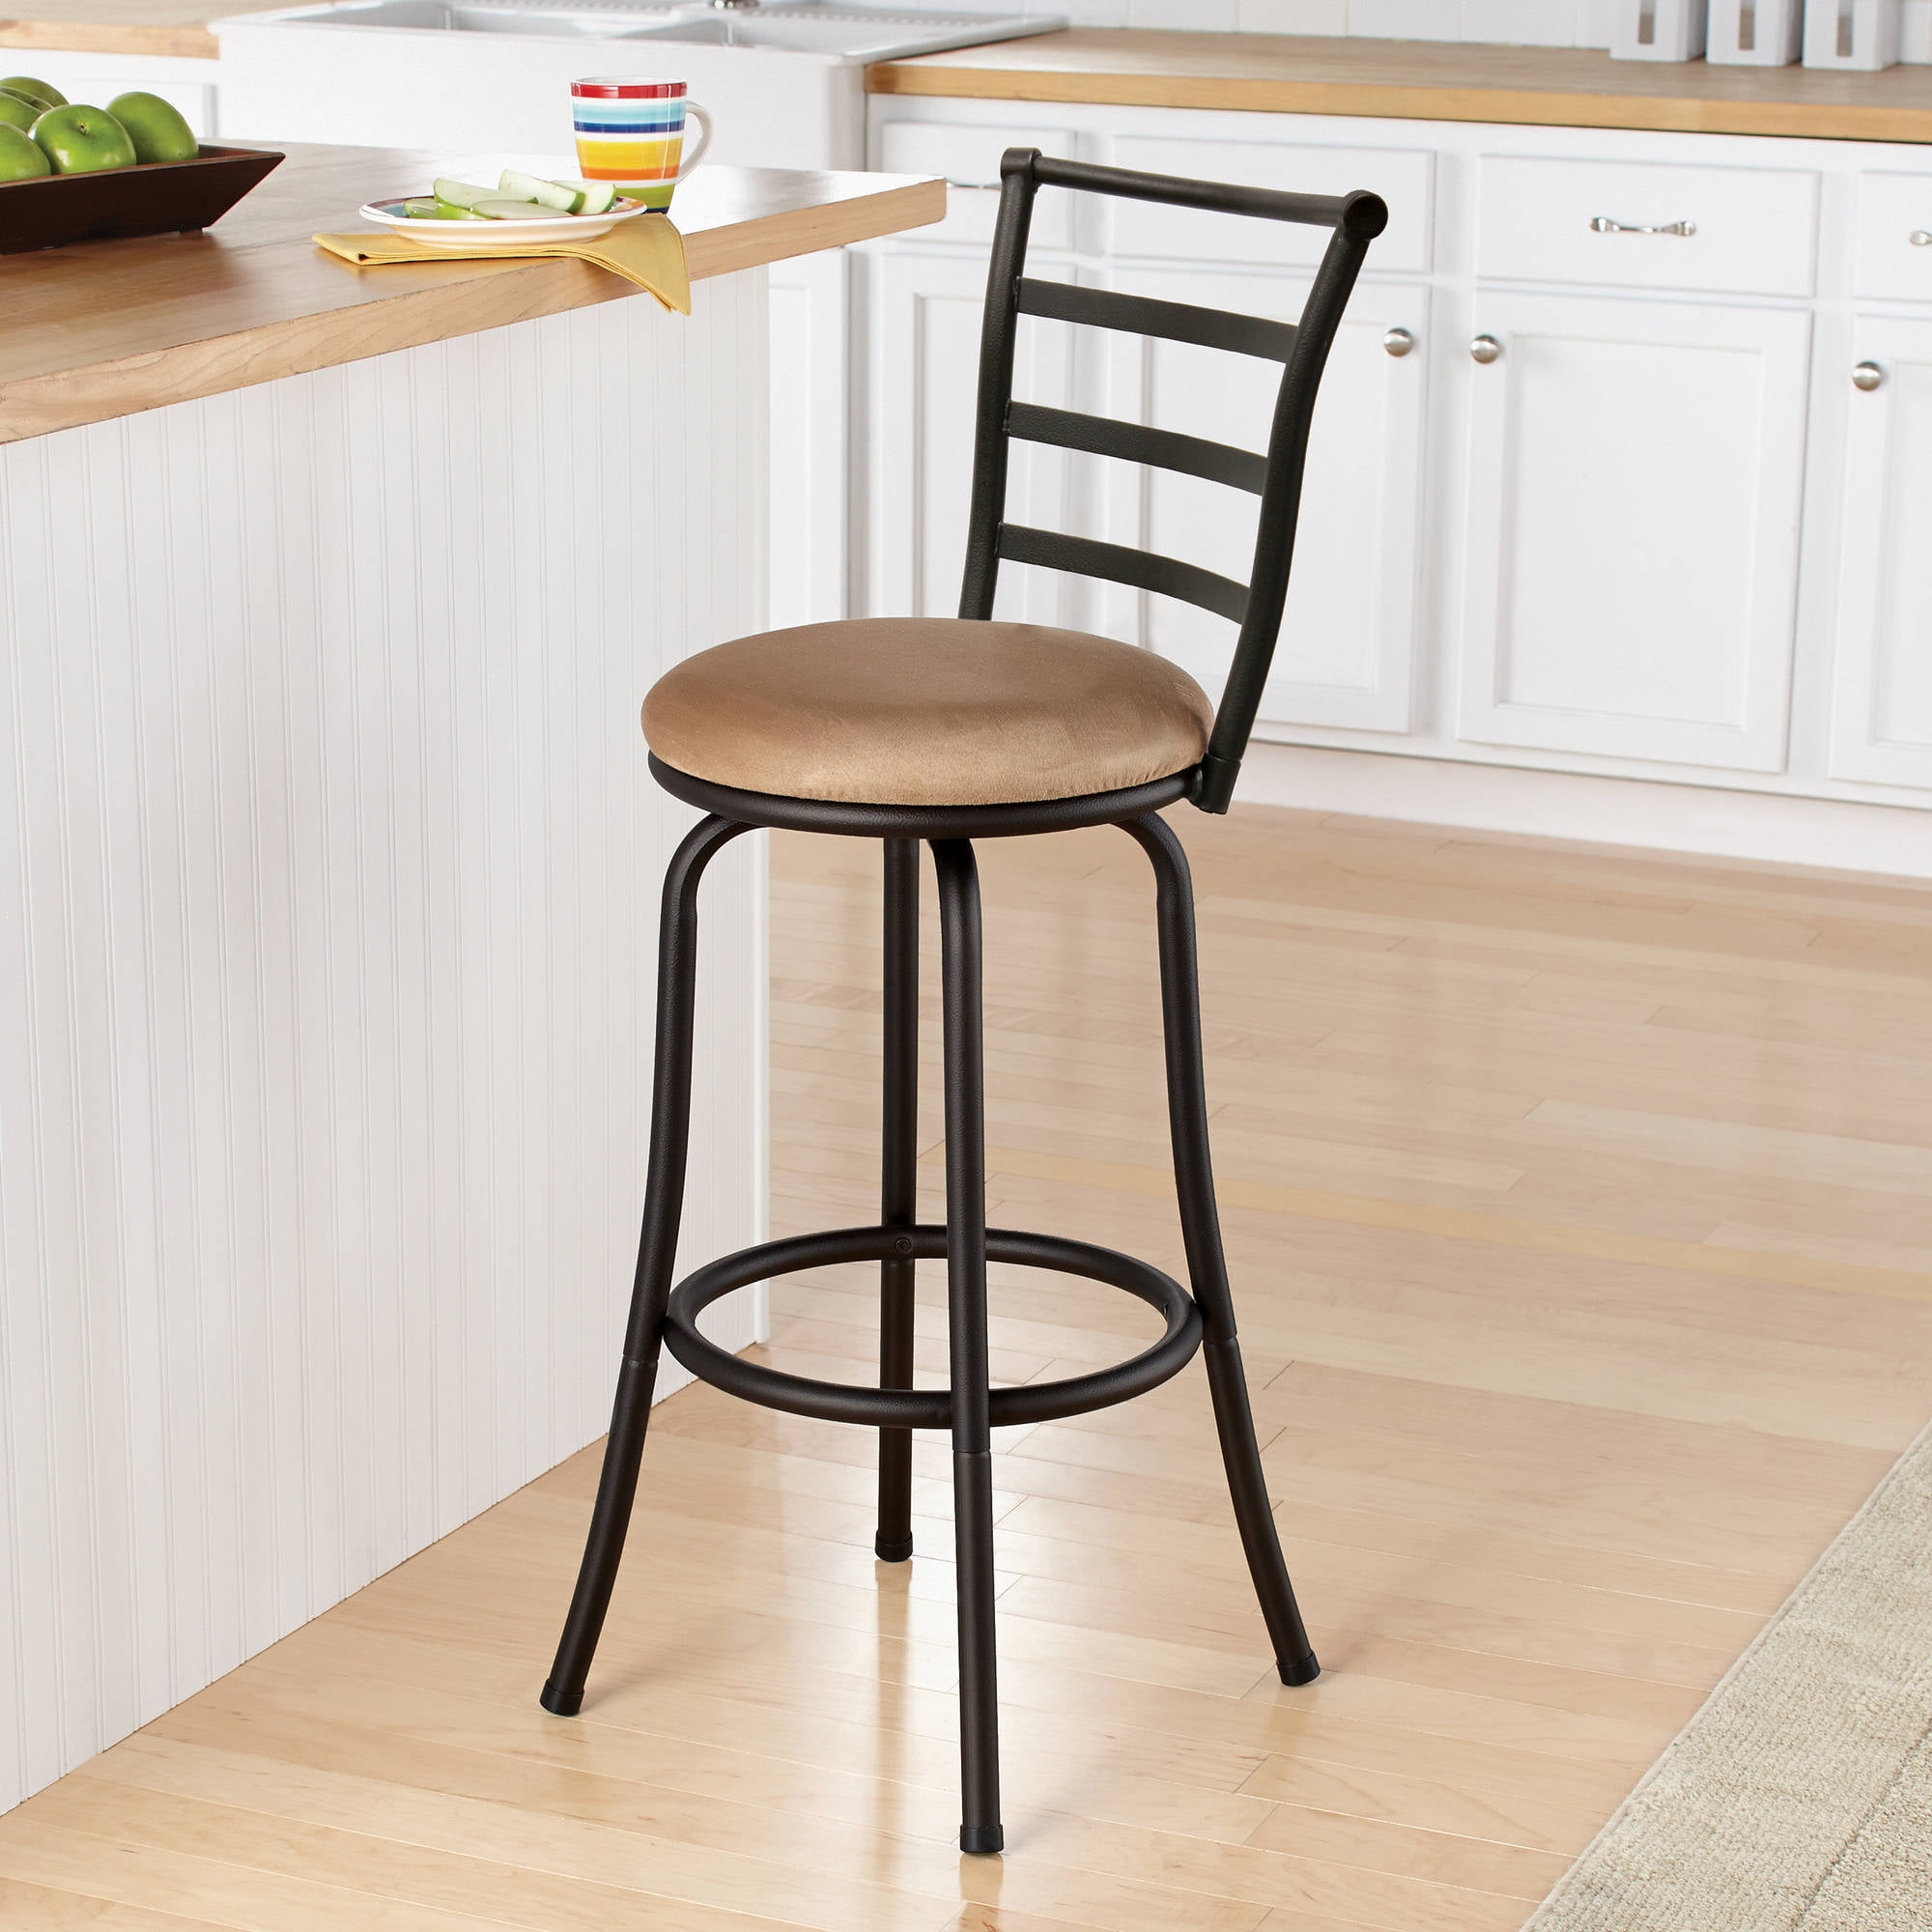 Ladder back chairs with cushions - Mainstays 29 Ladder Back Black Barstool Multiple Colors Walmart Com